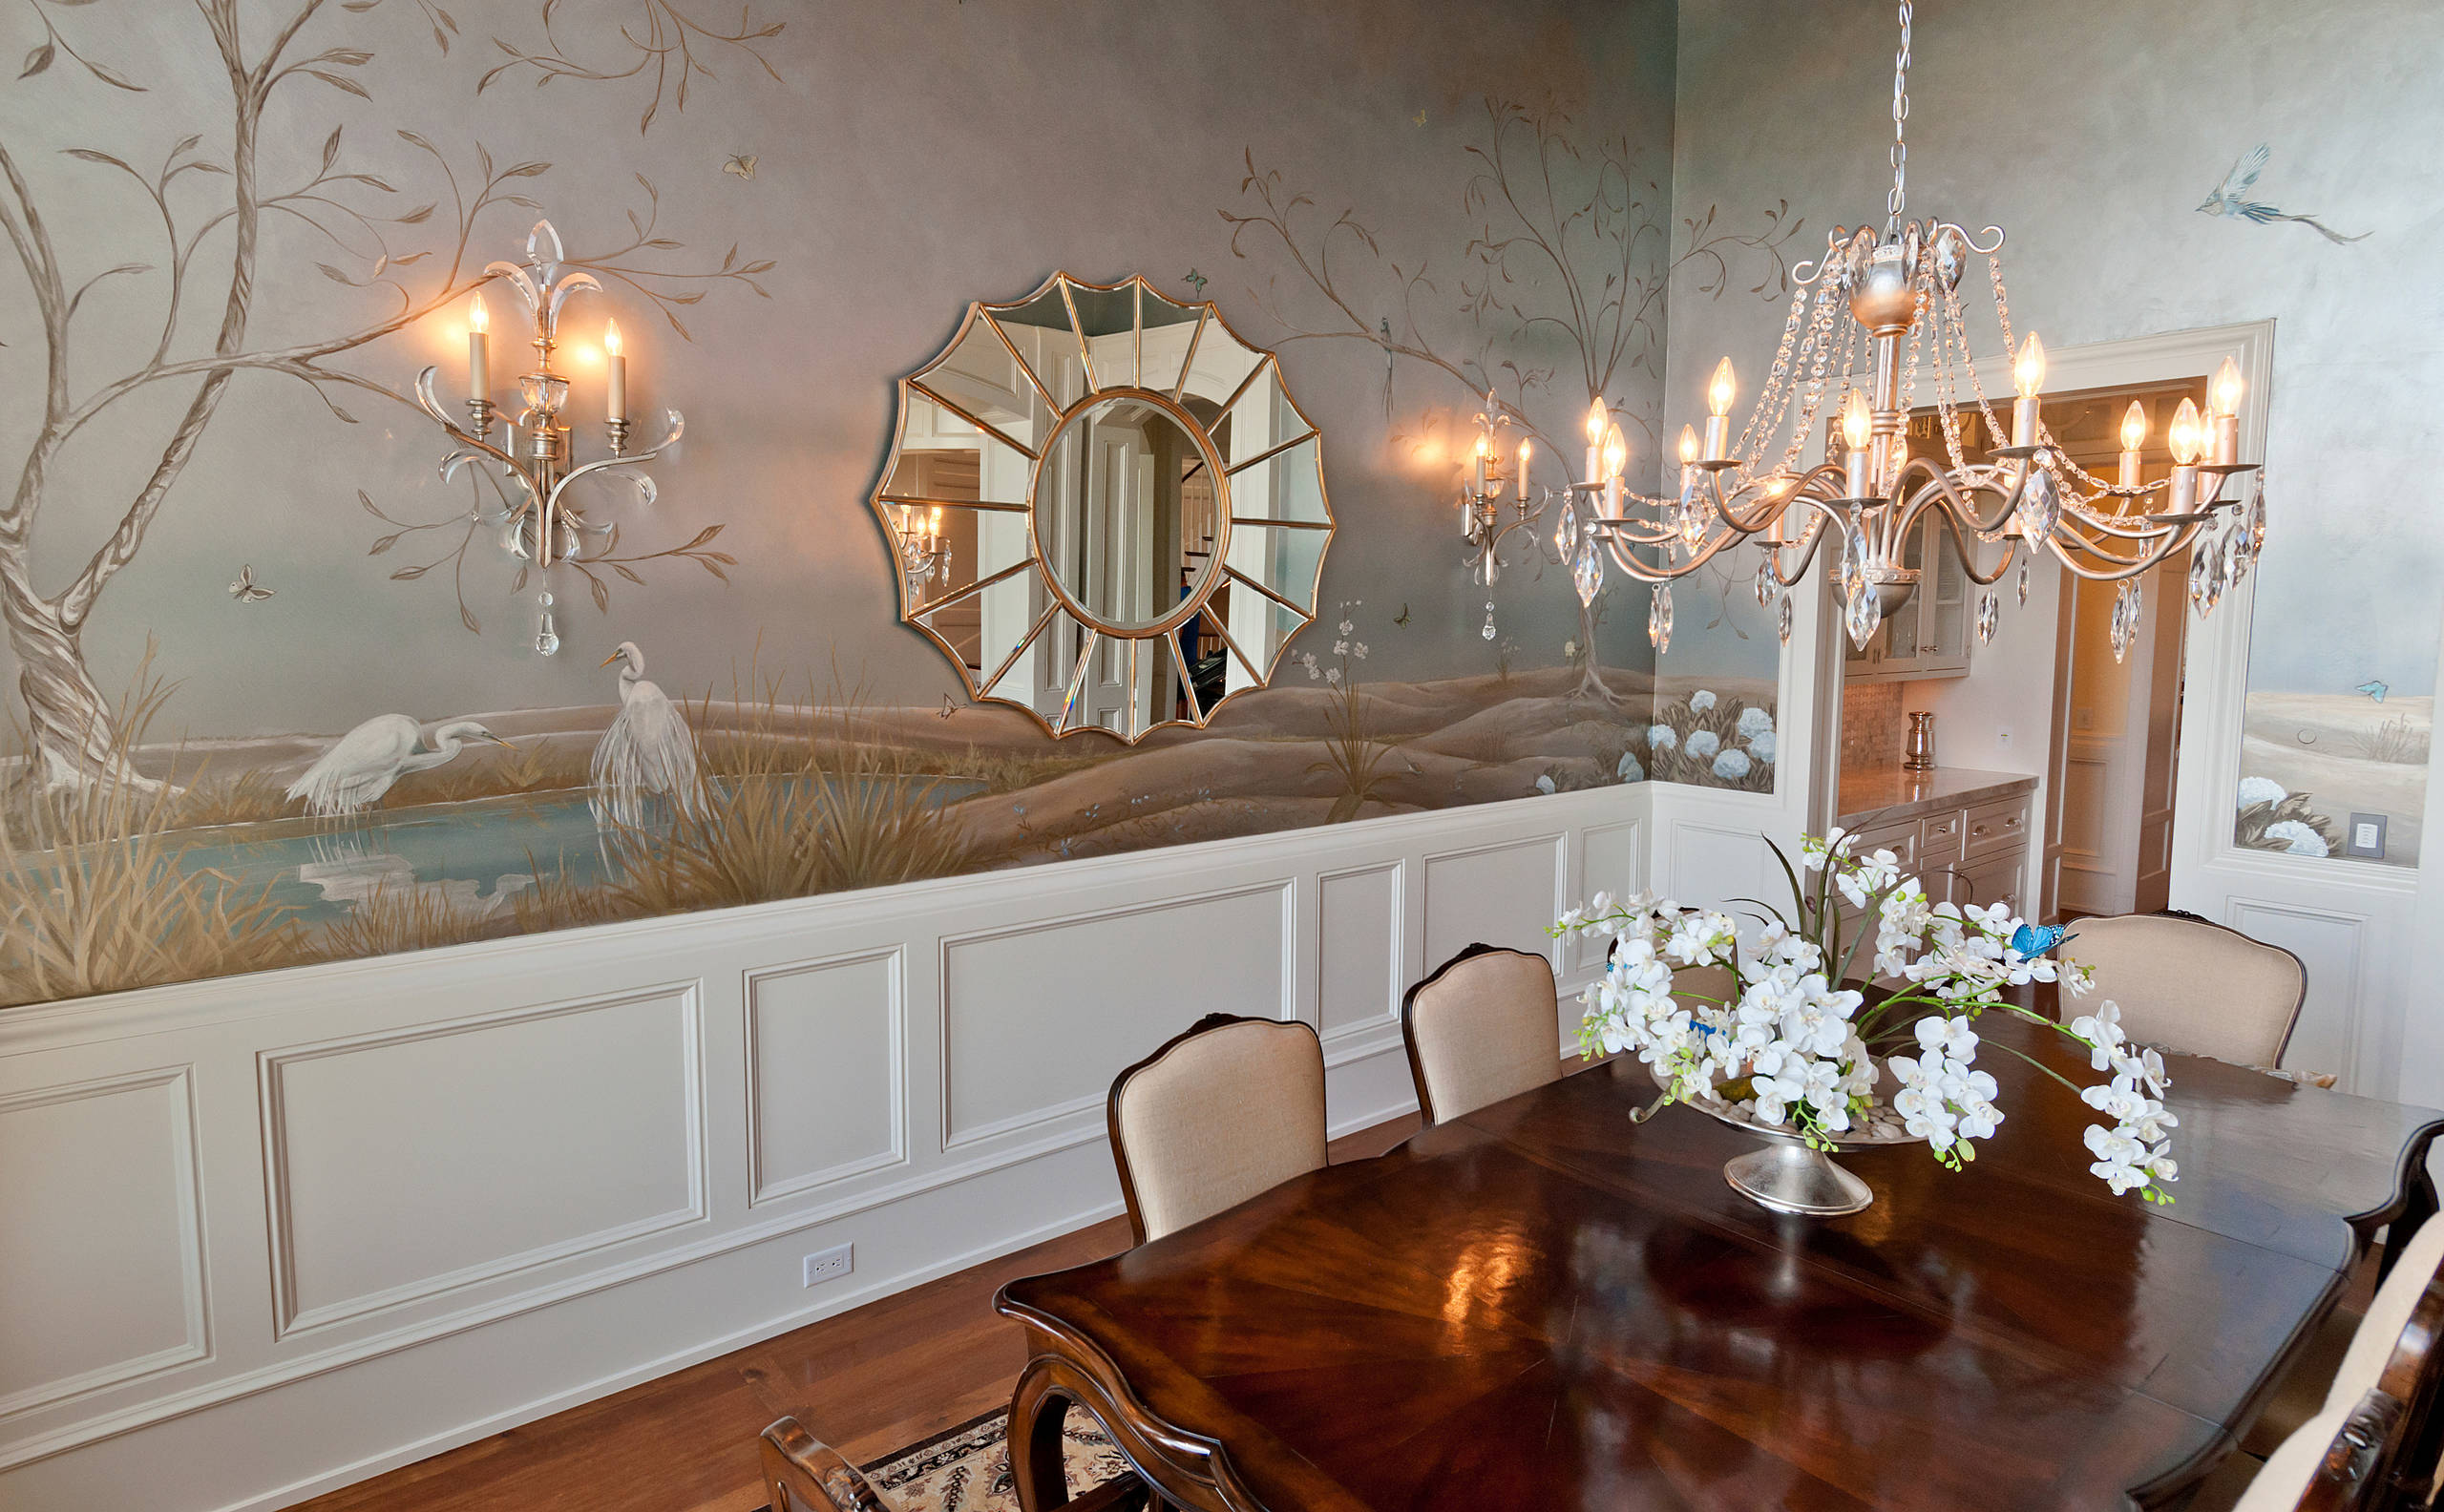 Dining Room Mural Houzz, Dining Room Murals Pictures